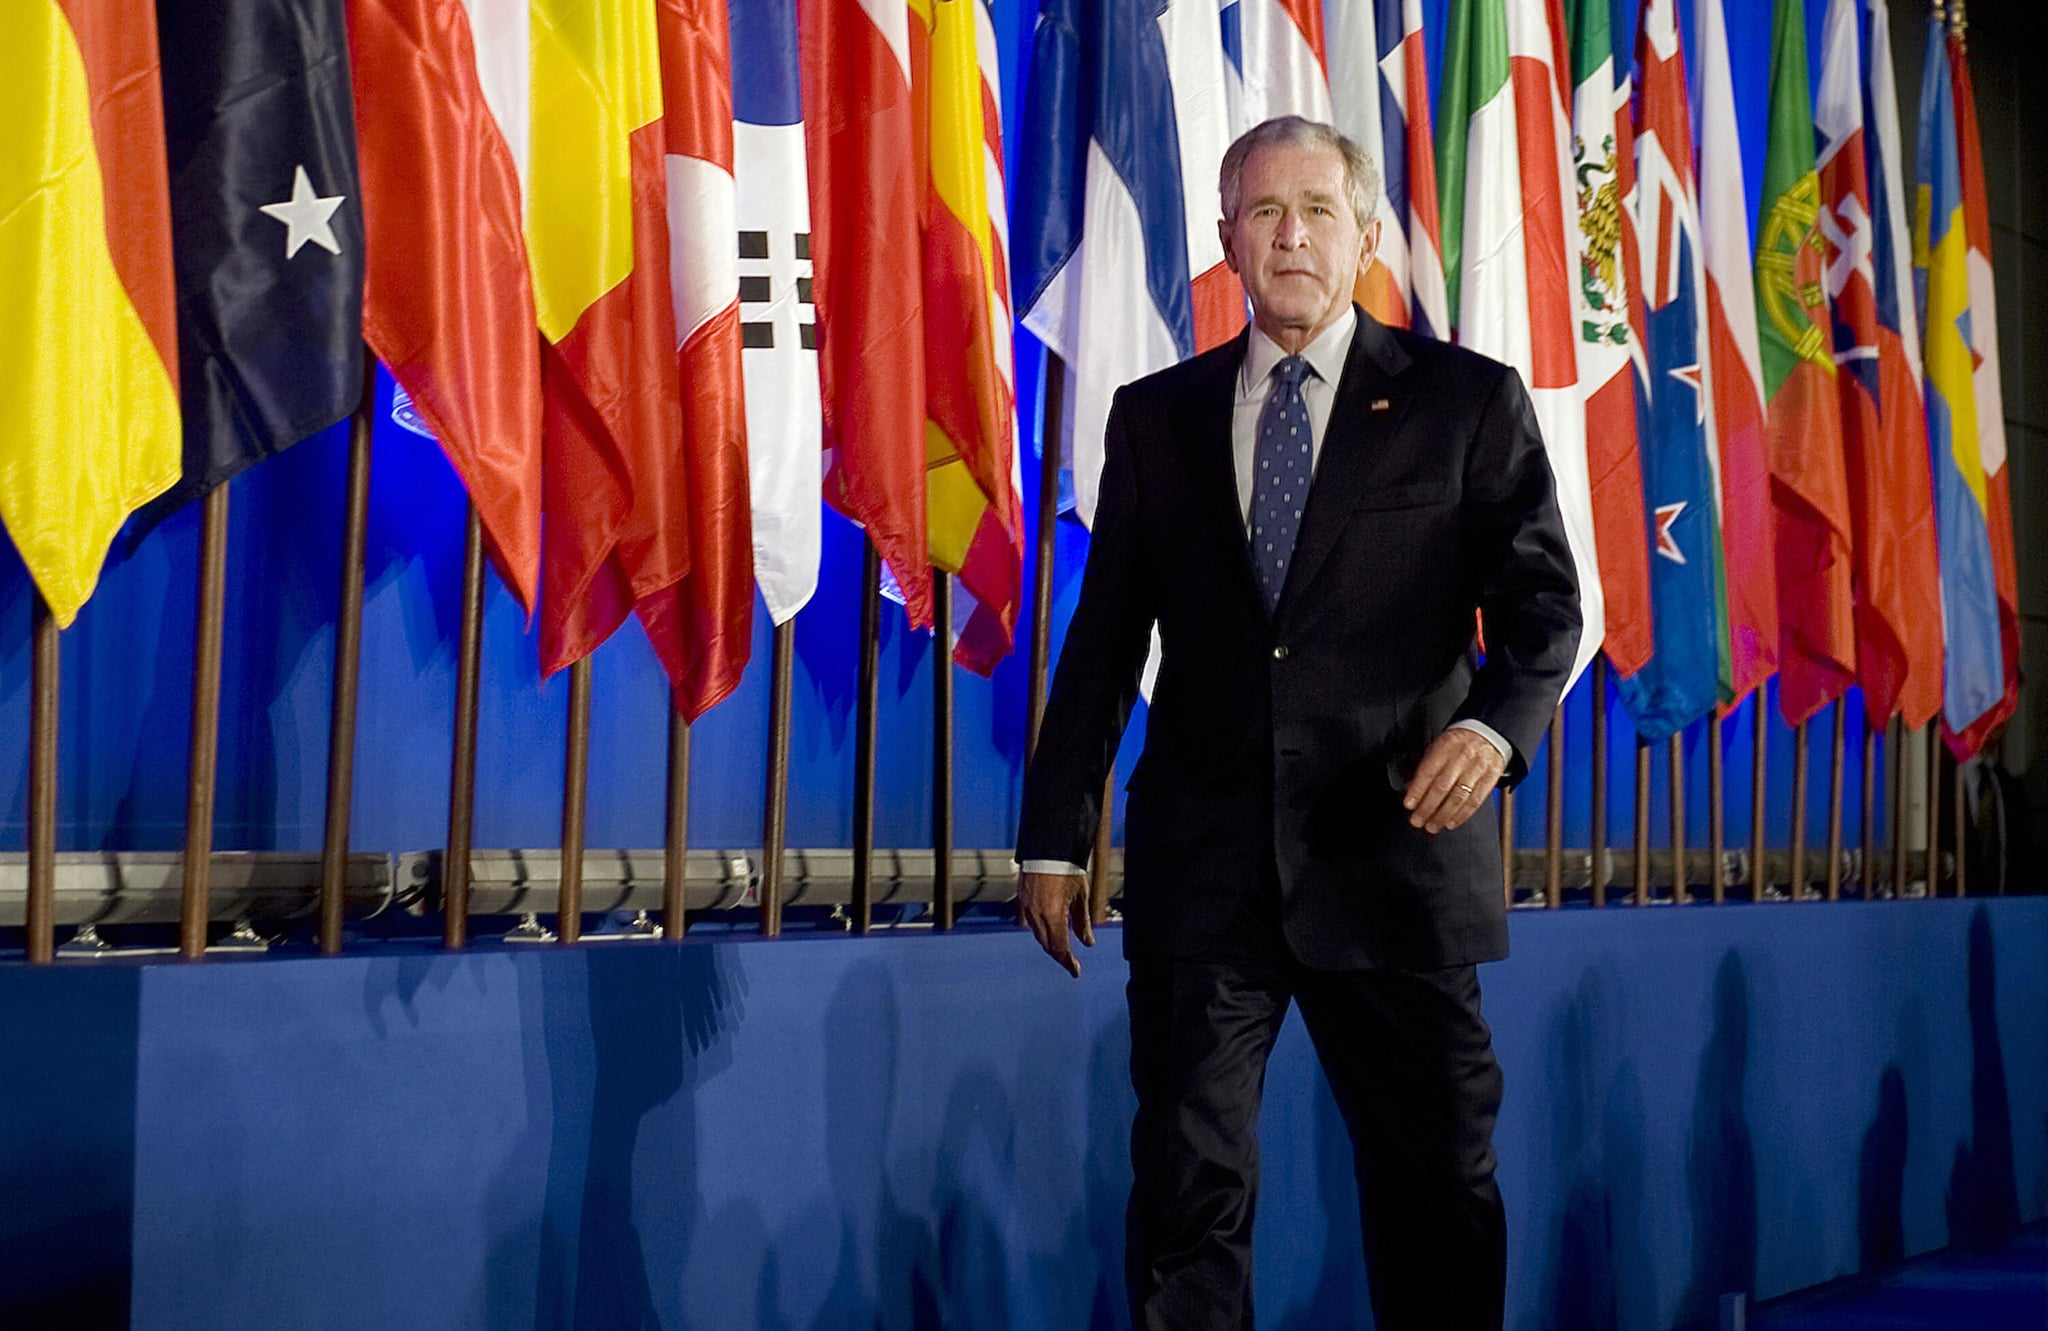 Bush delivers speech at Organization for Economic Co-Operation and Development (OECD) in Paris.